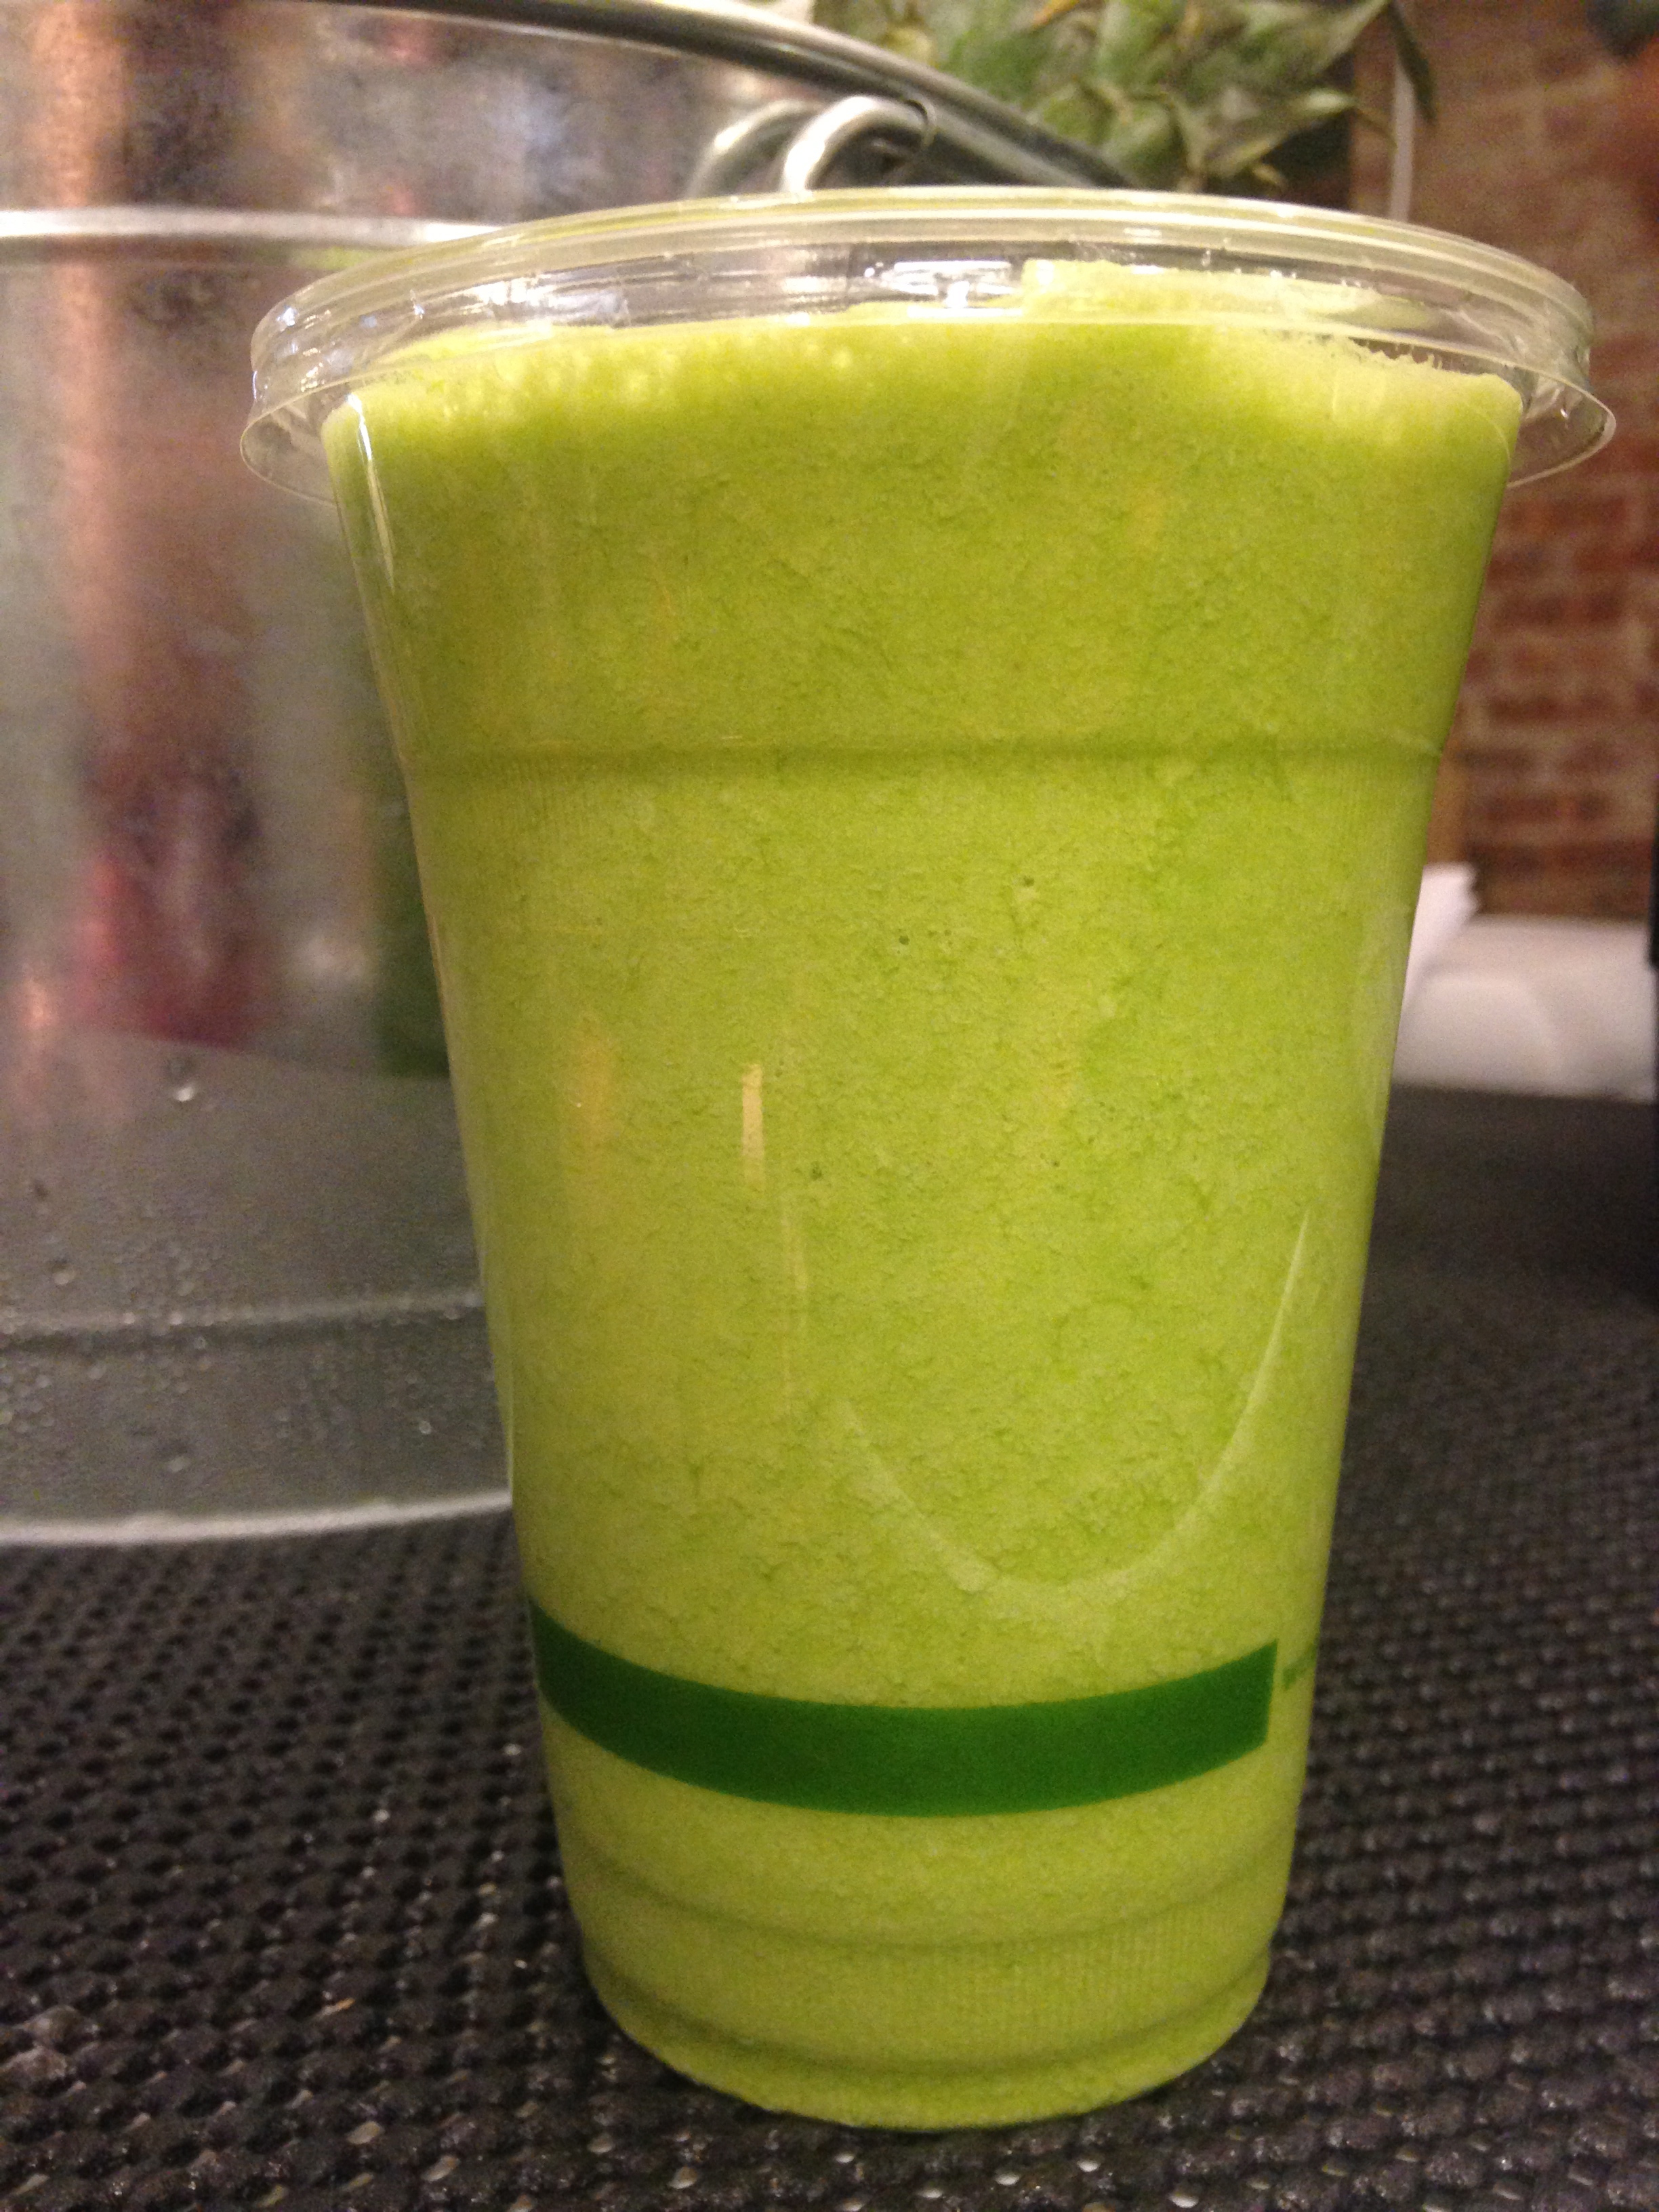 The inaugural green smoothie at the Seed